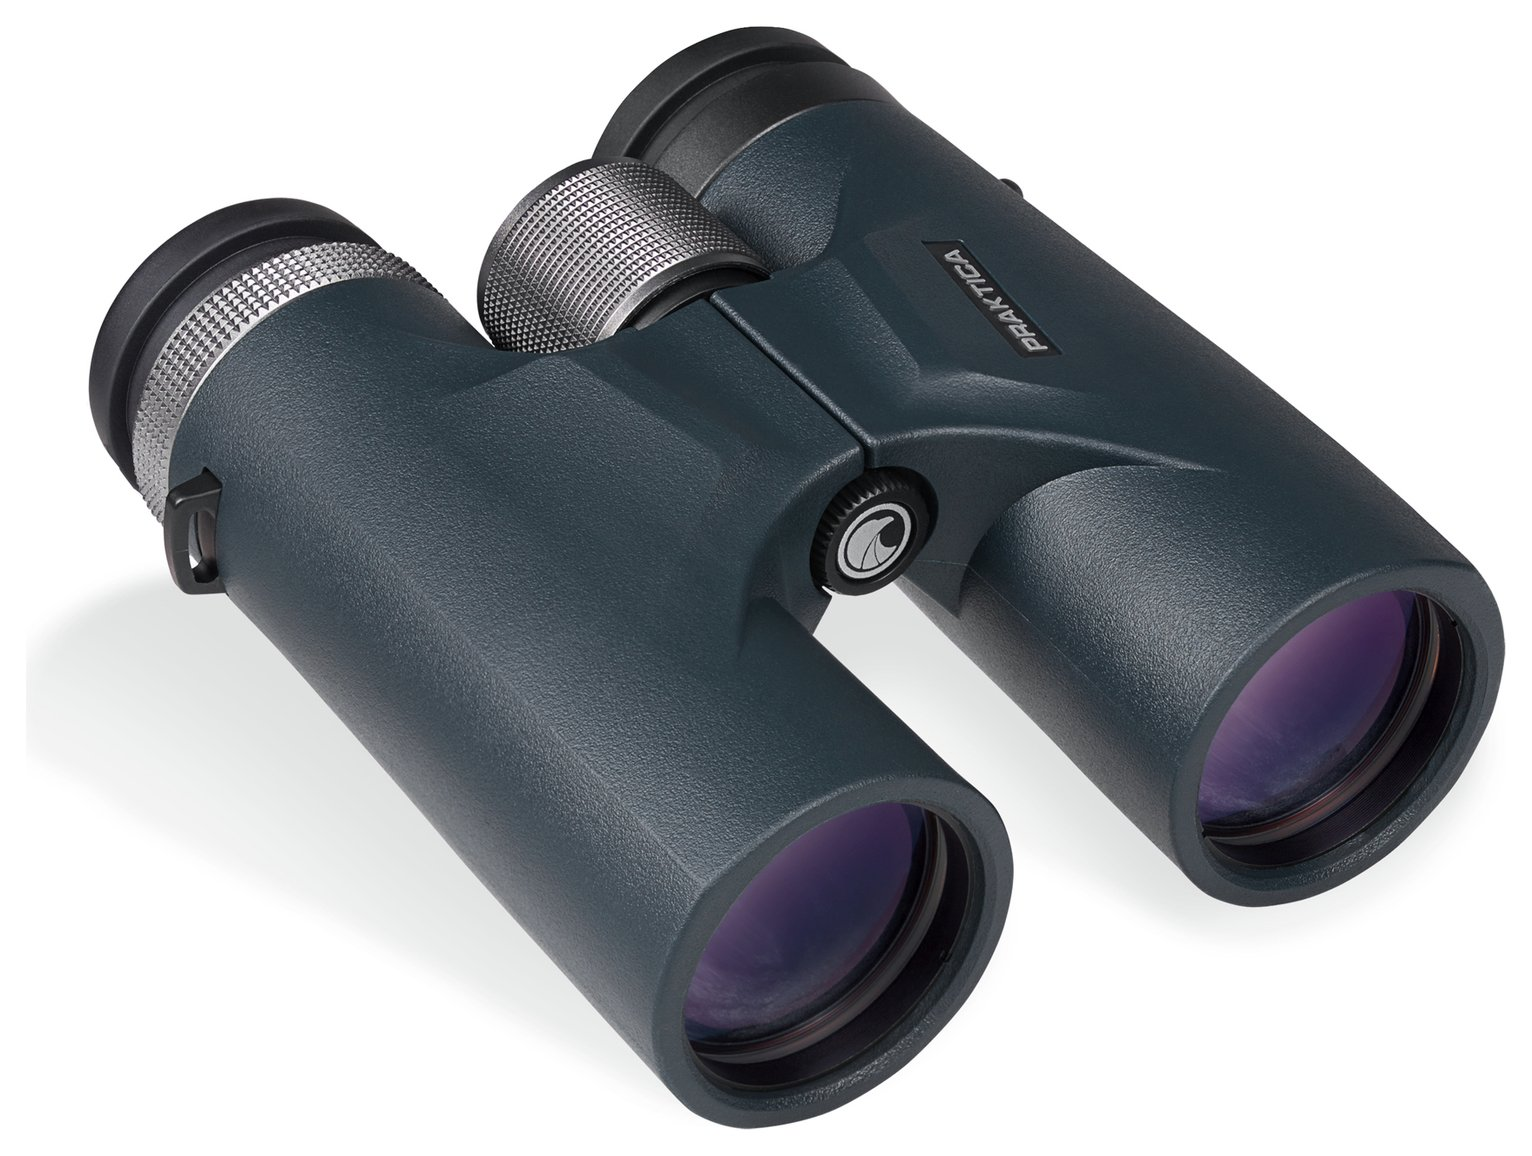 Praktica - Binoculars - 10x42mm Waterproof